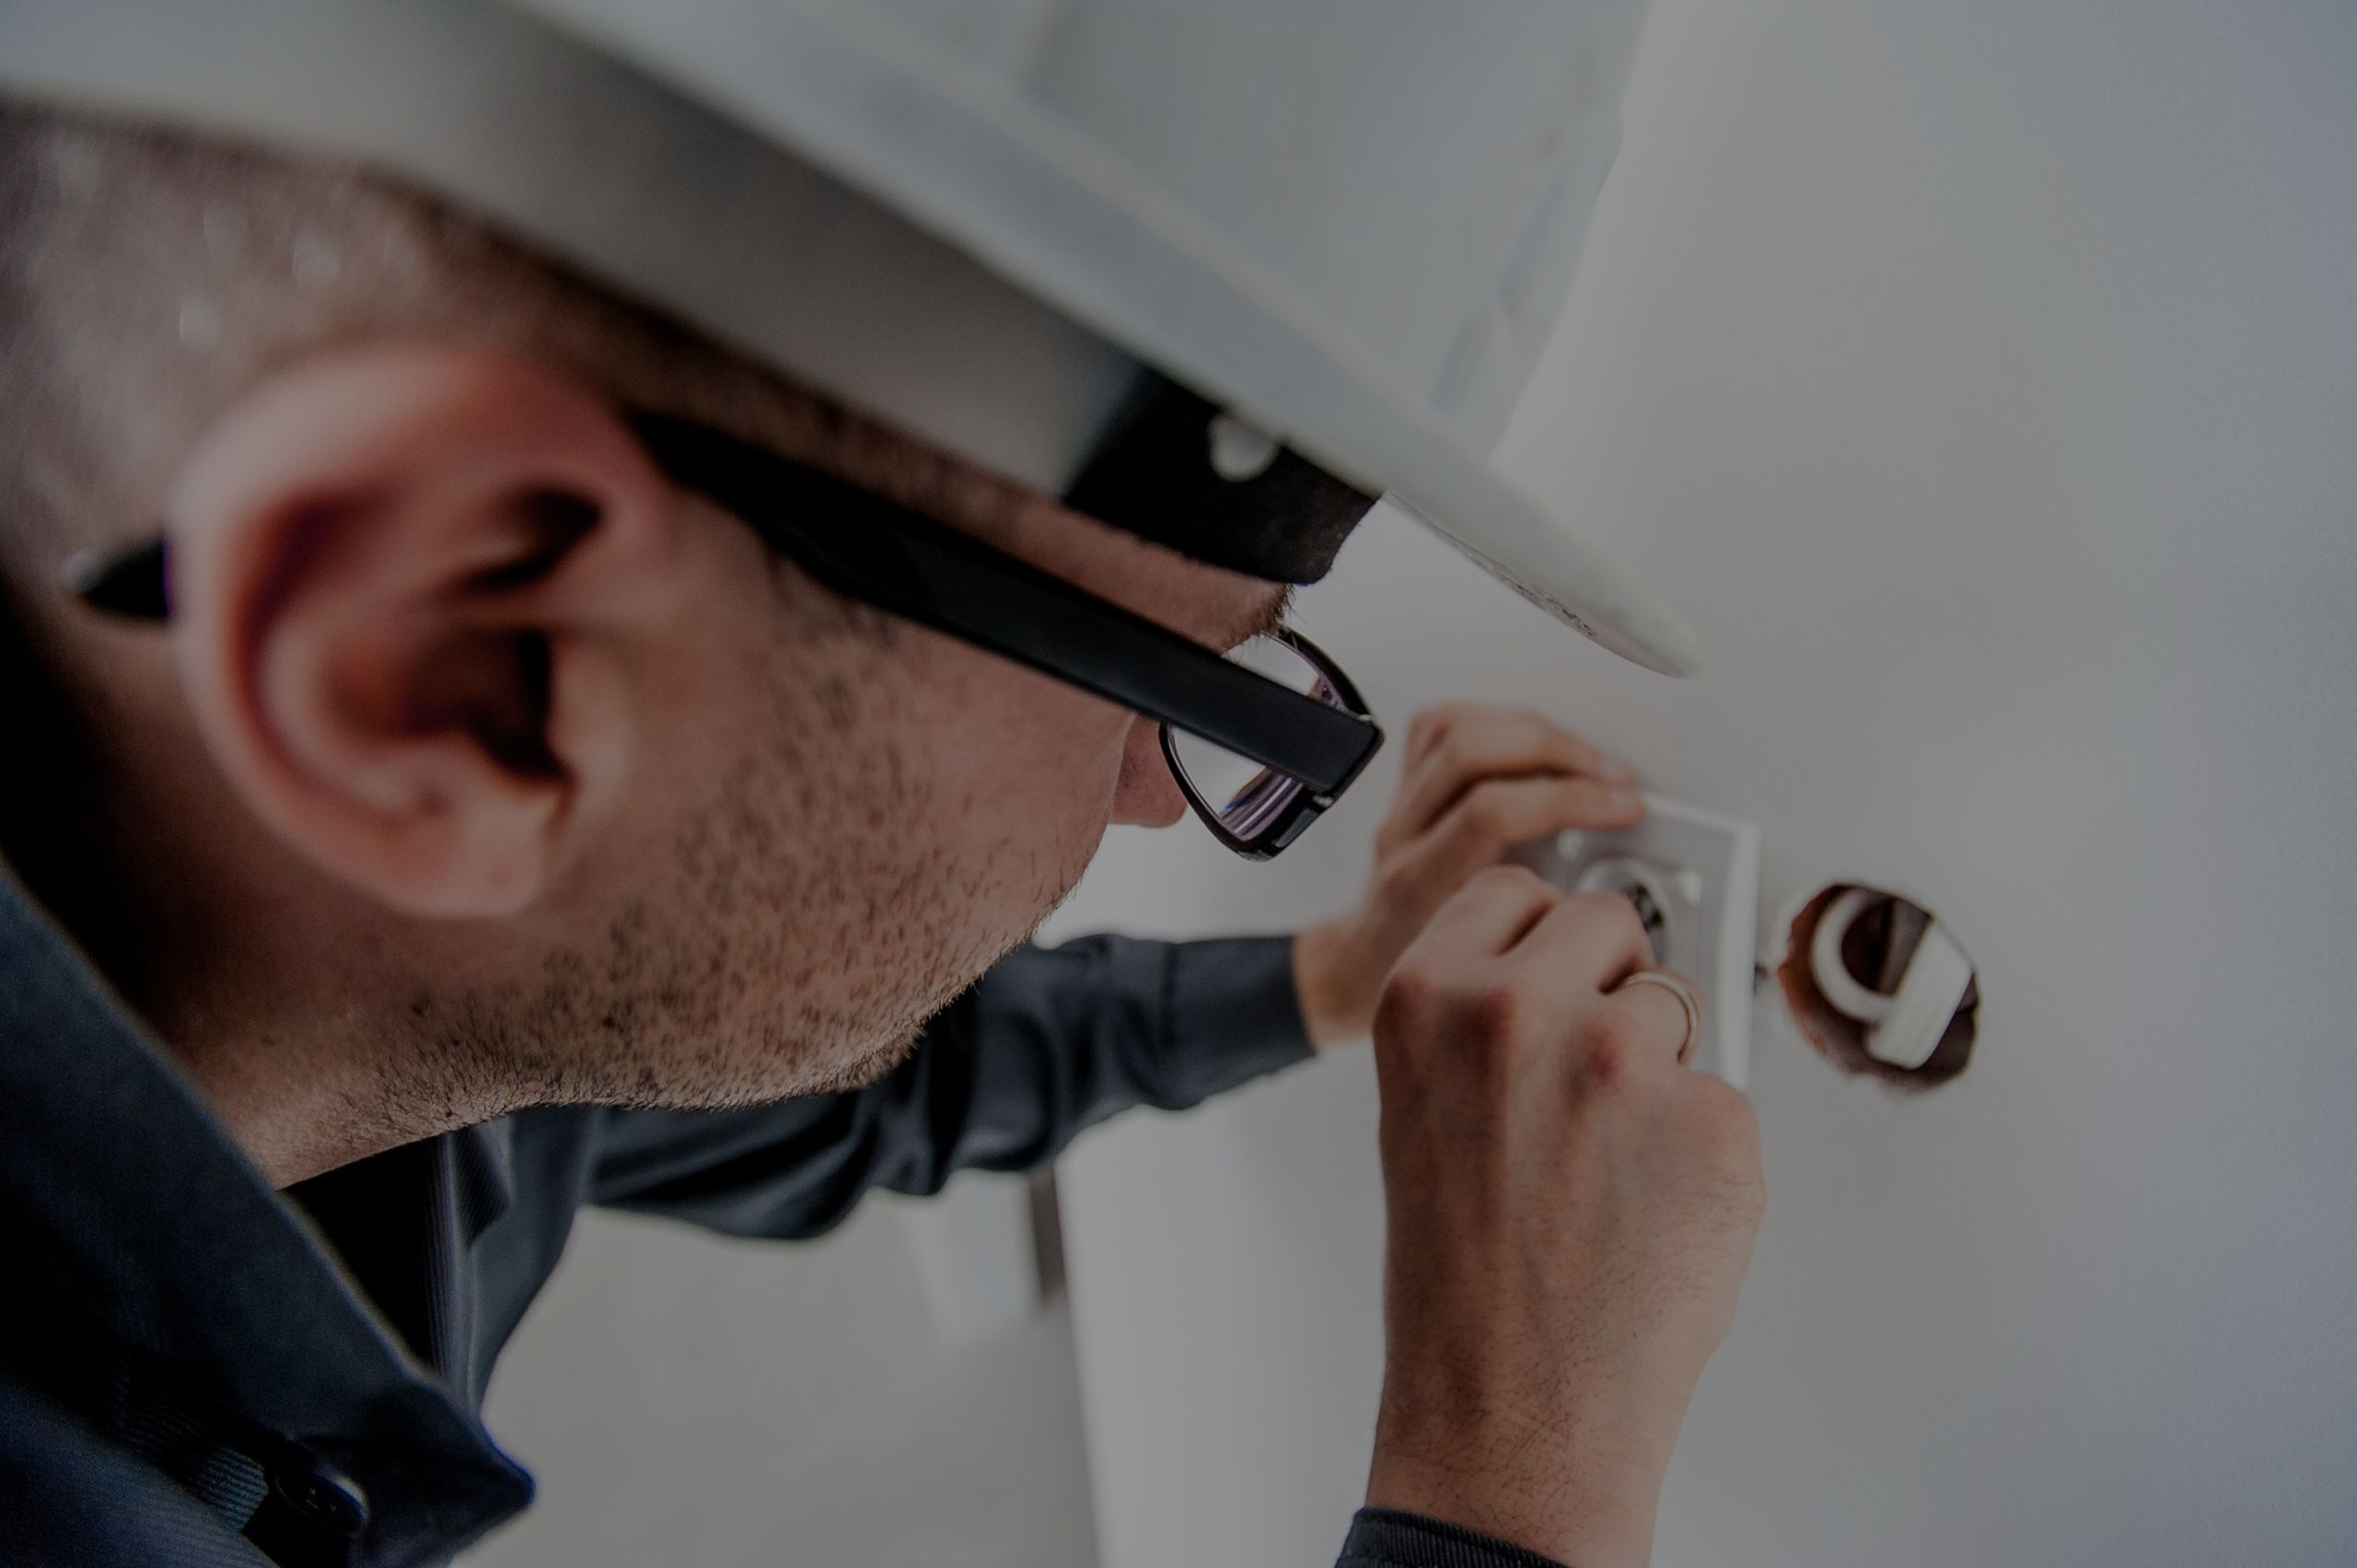 Home Repair Projects: How Much Should You Pay for Each Job?